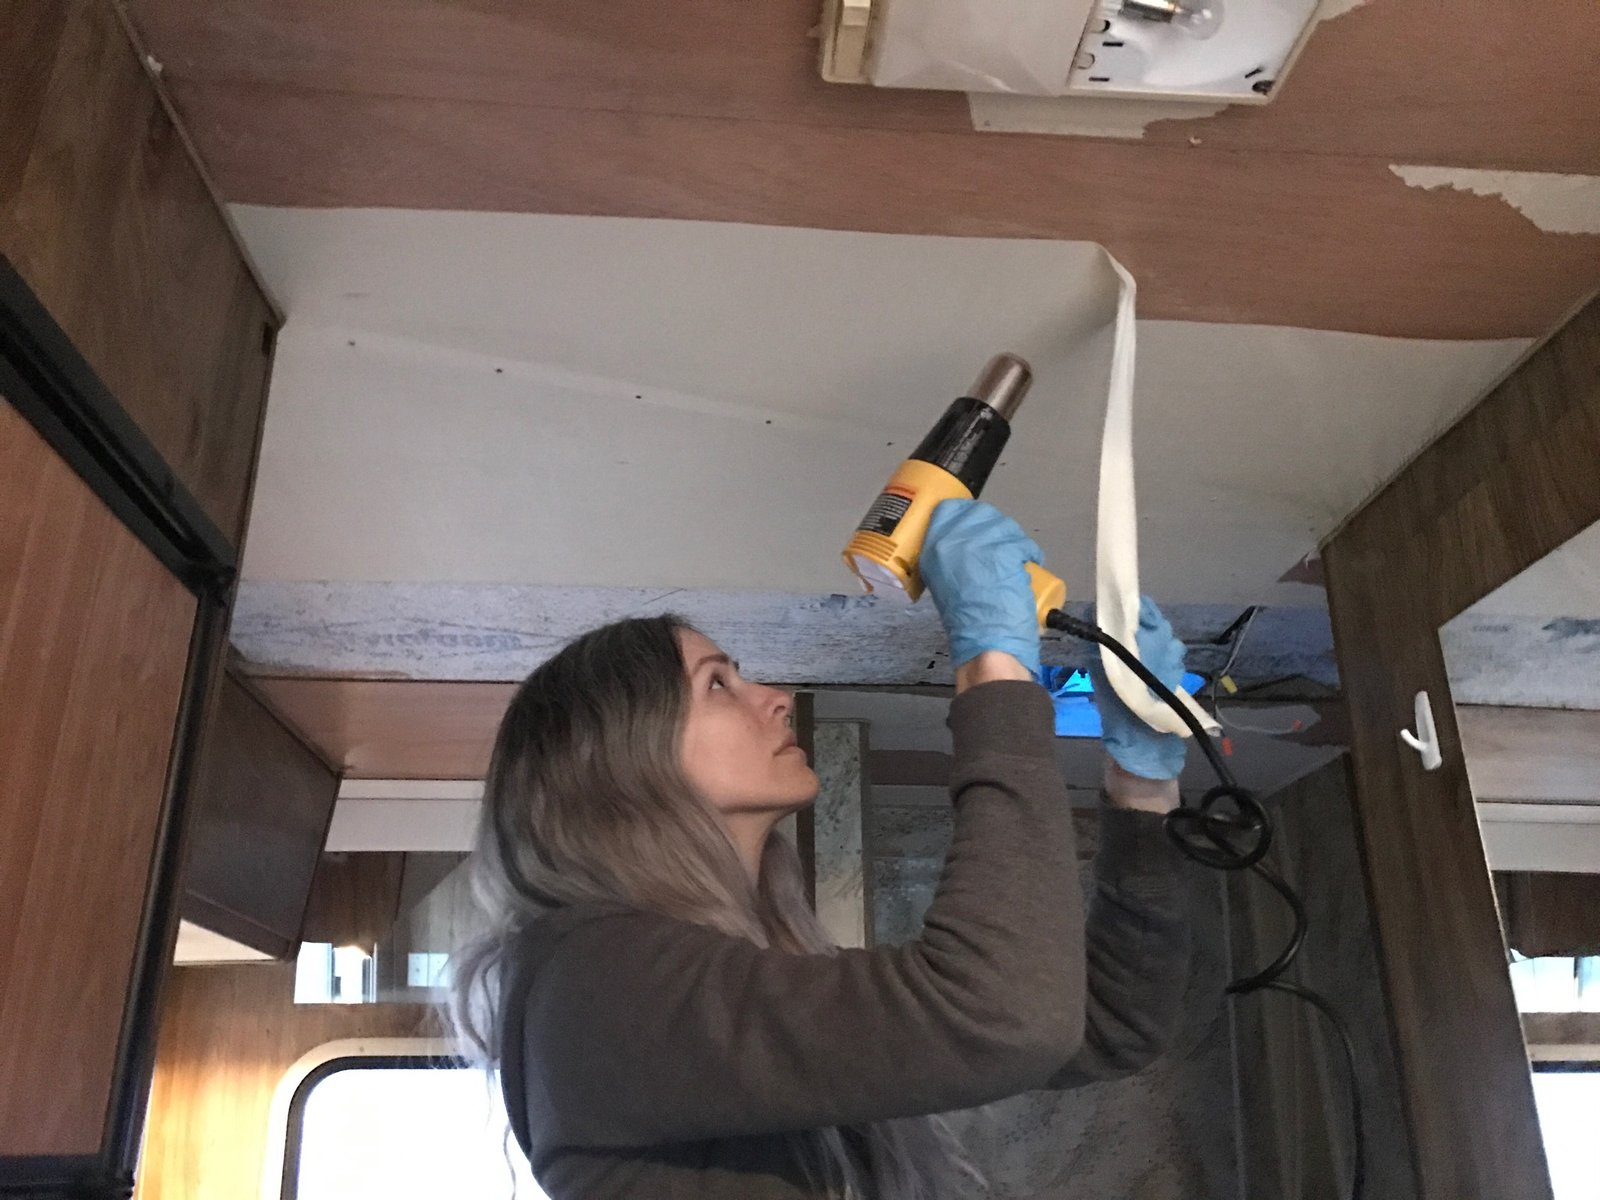 Kamarul removing wallpaper from the RV's ceiling. A Portland Couple Renovate a 1982 RV, Turning It Into Their New Home - Photo 5 of 13